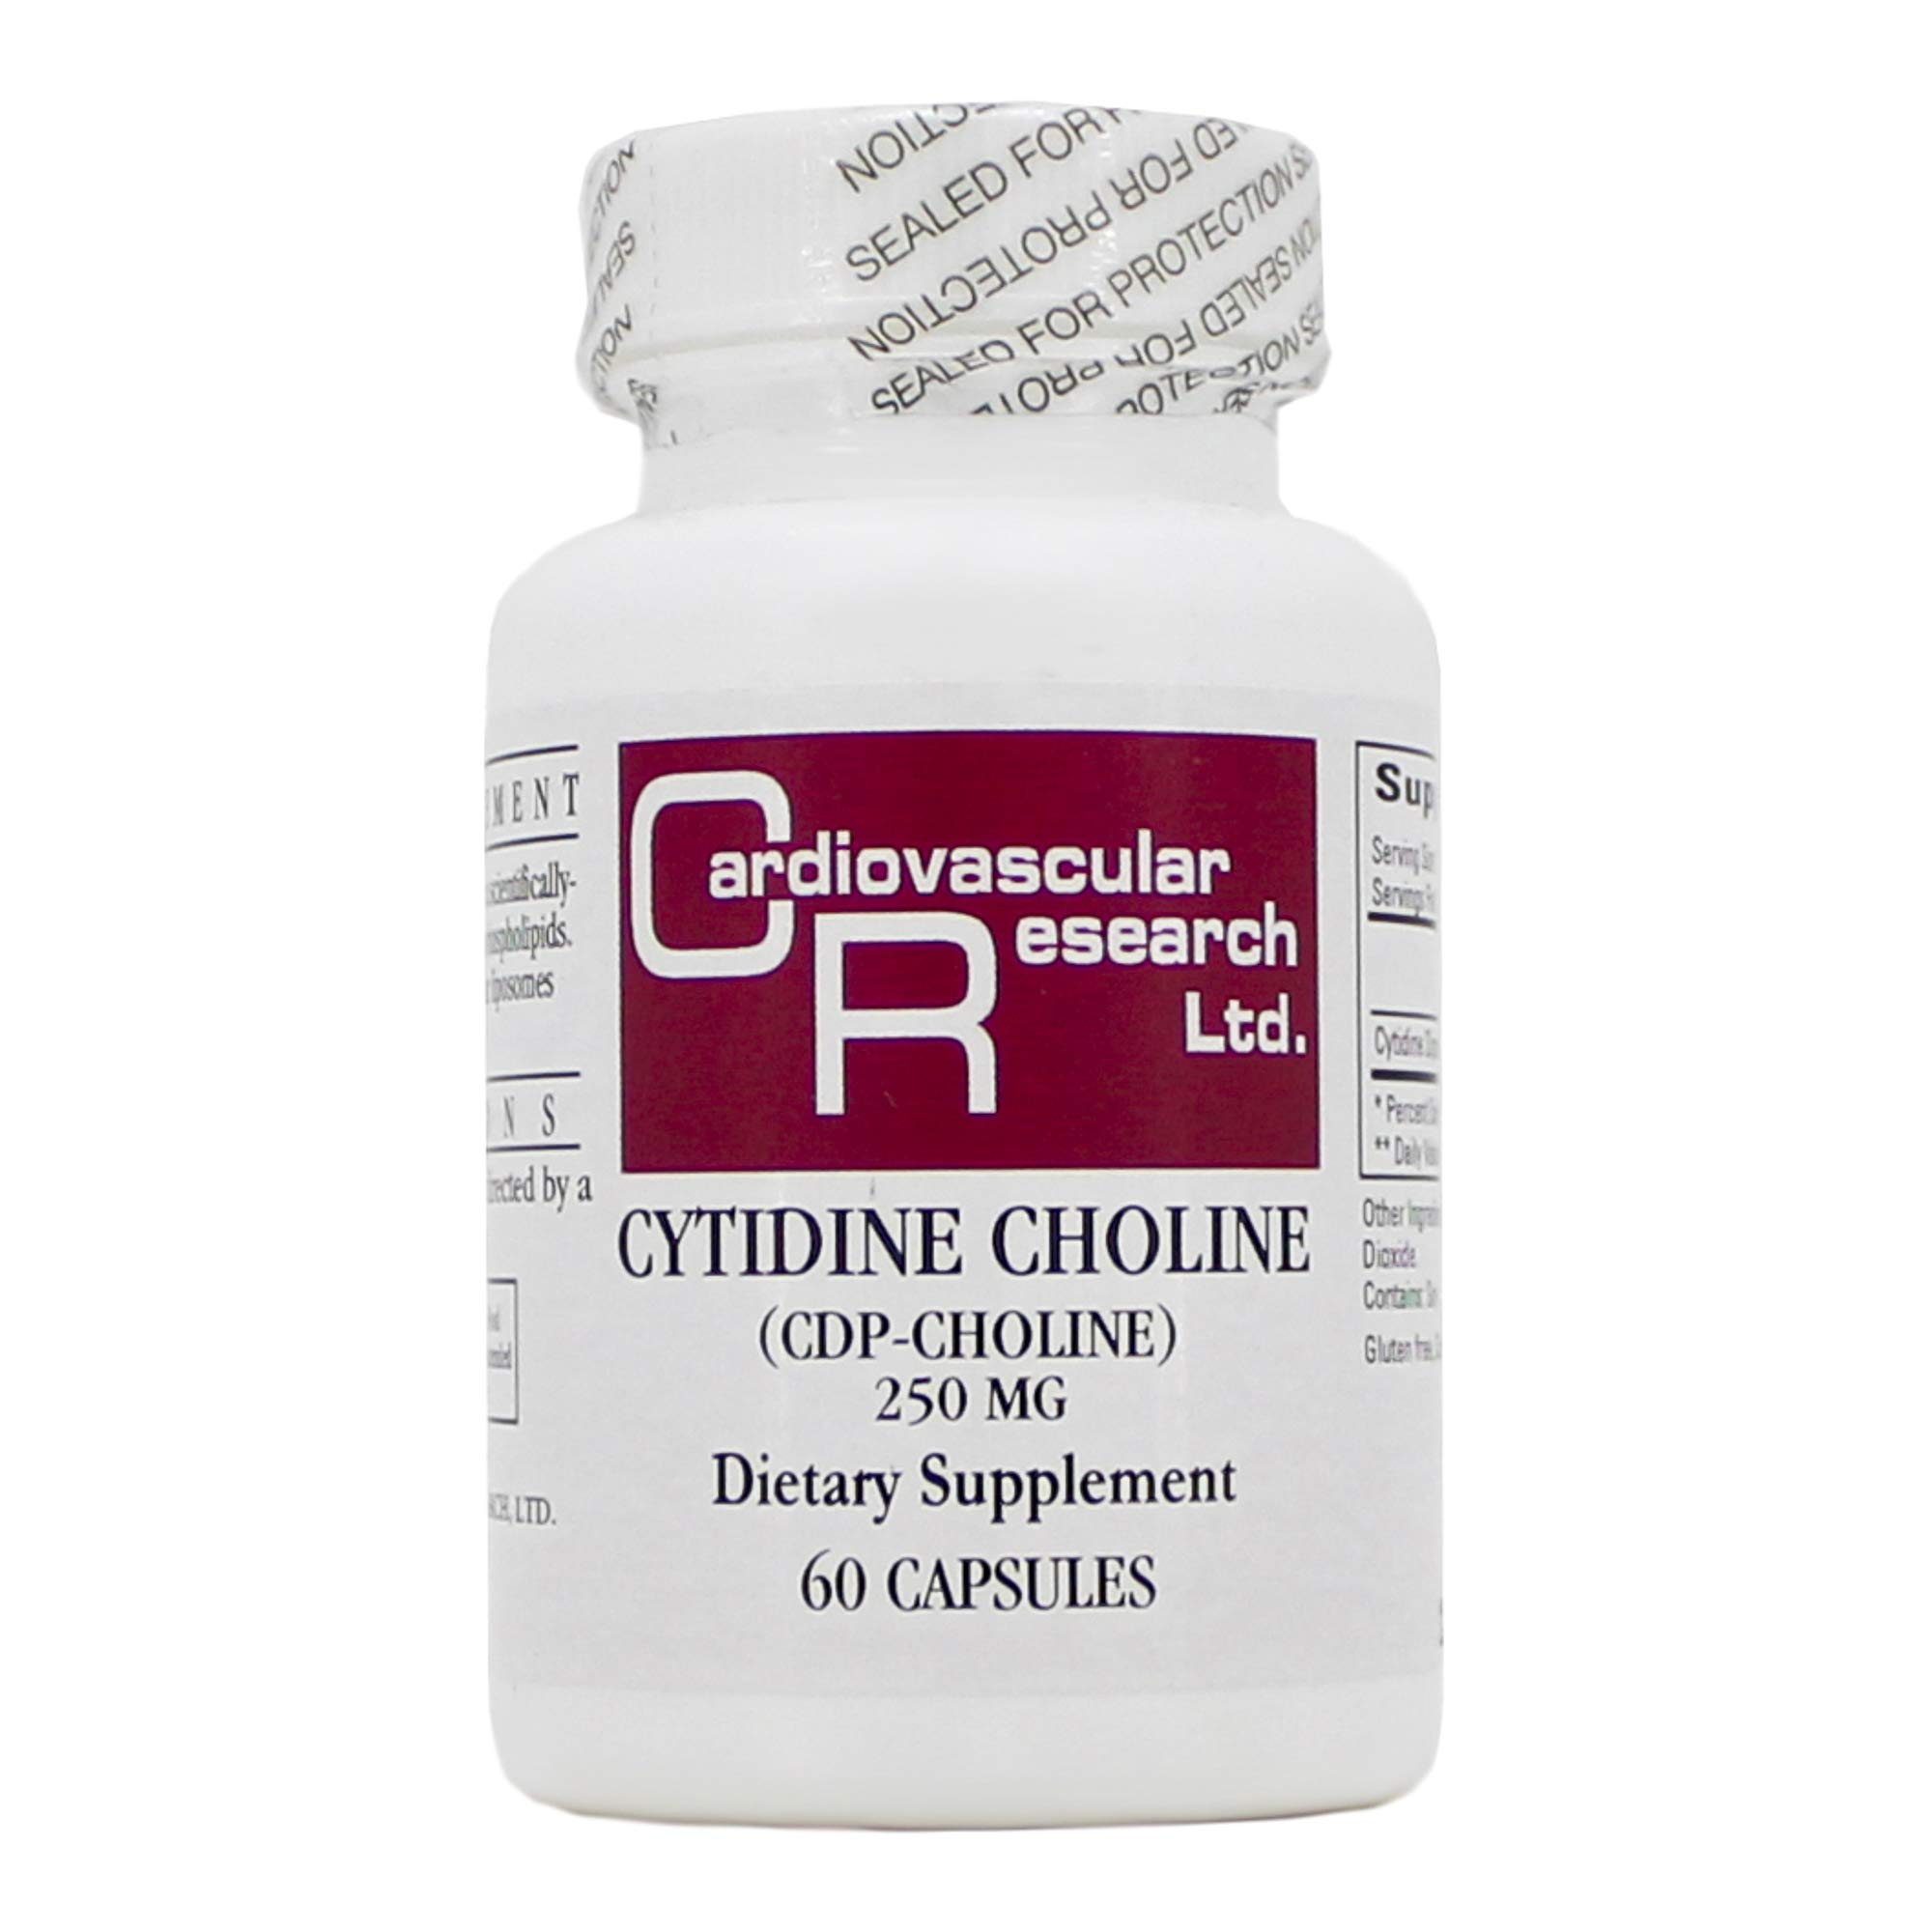 Cytidine Choline/CDP 250mg 60 Capsules by ECOLOGICAL FORMULAS - CARDIOVASCULAR RESEARCH